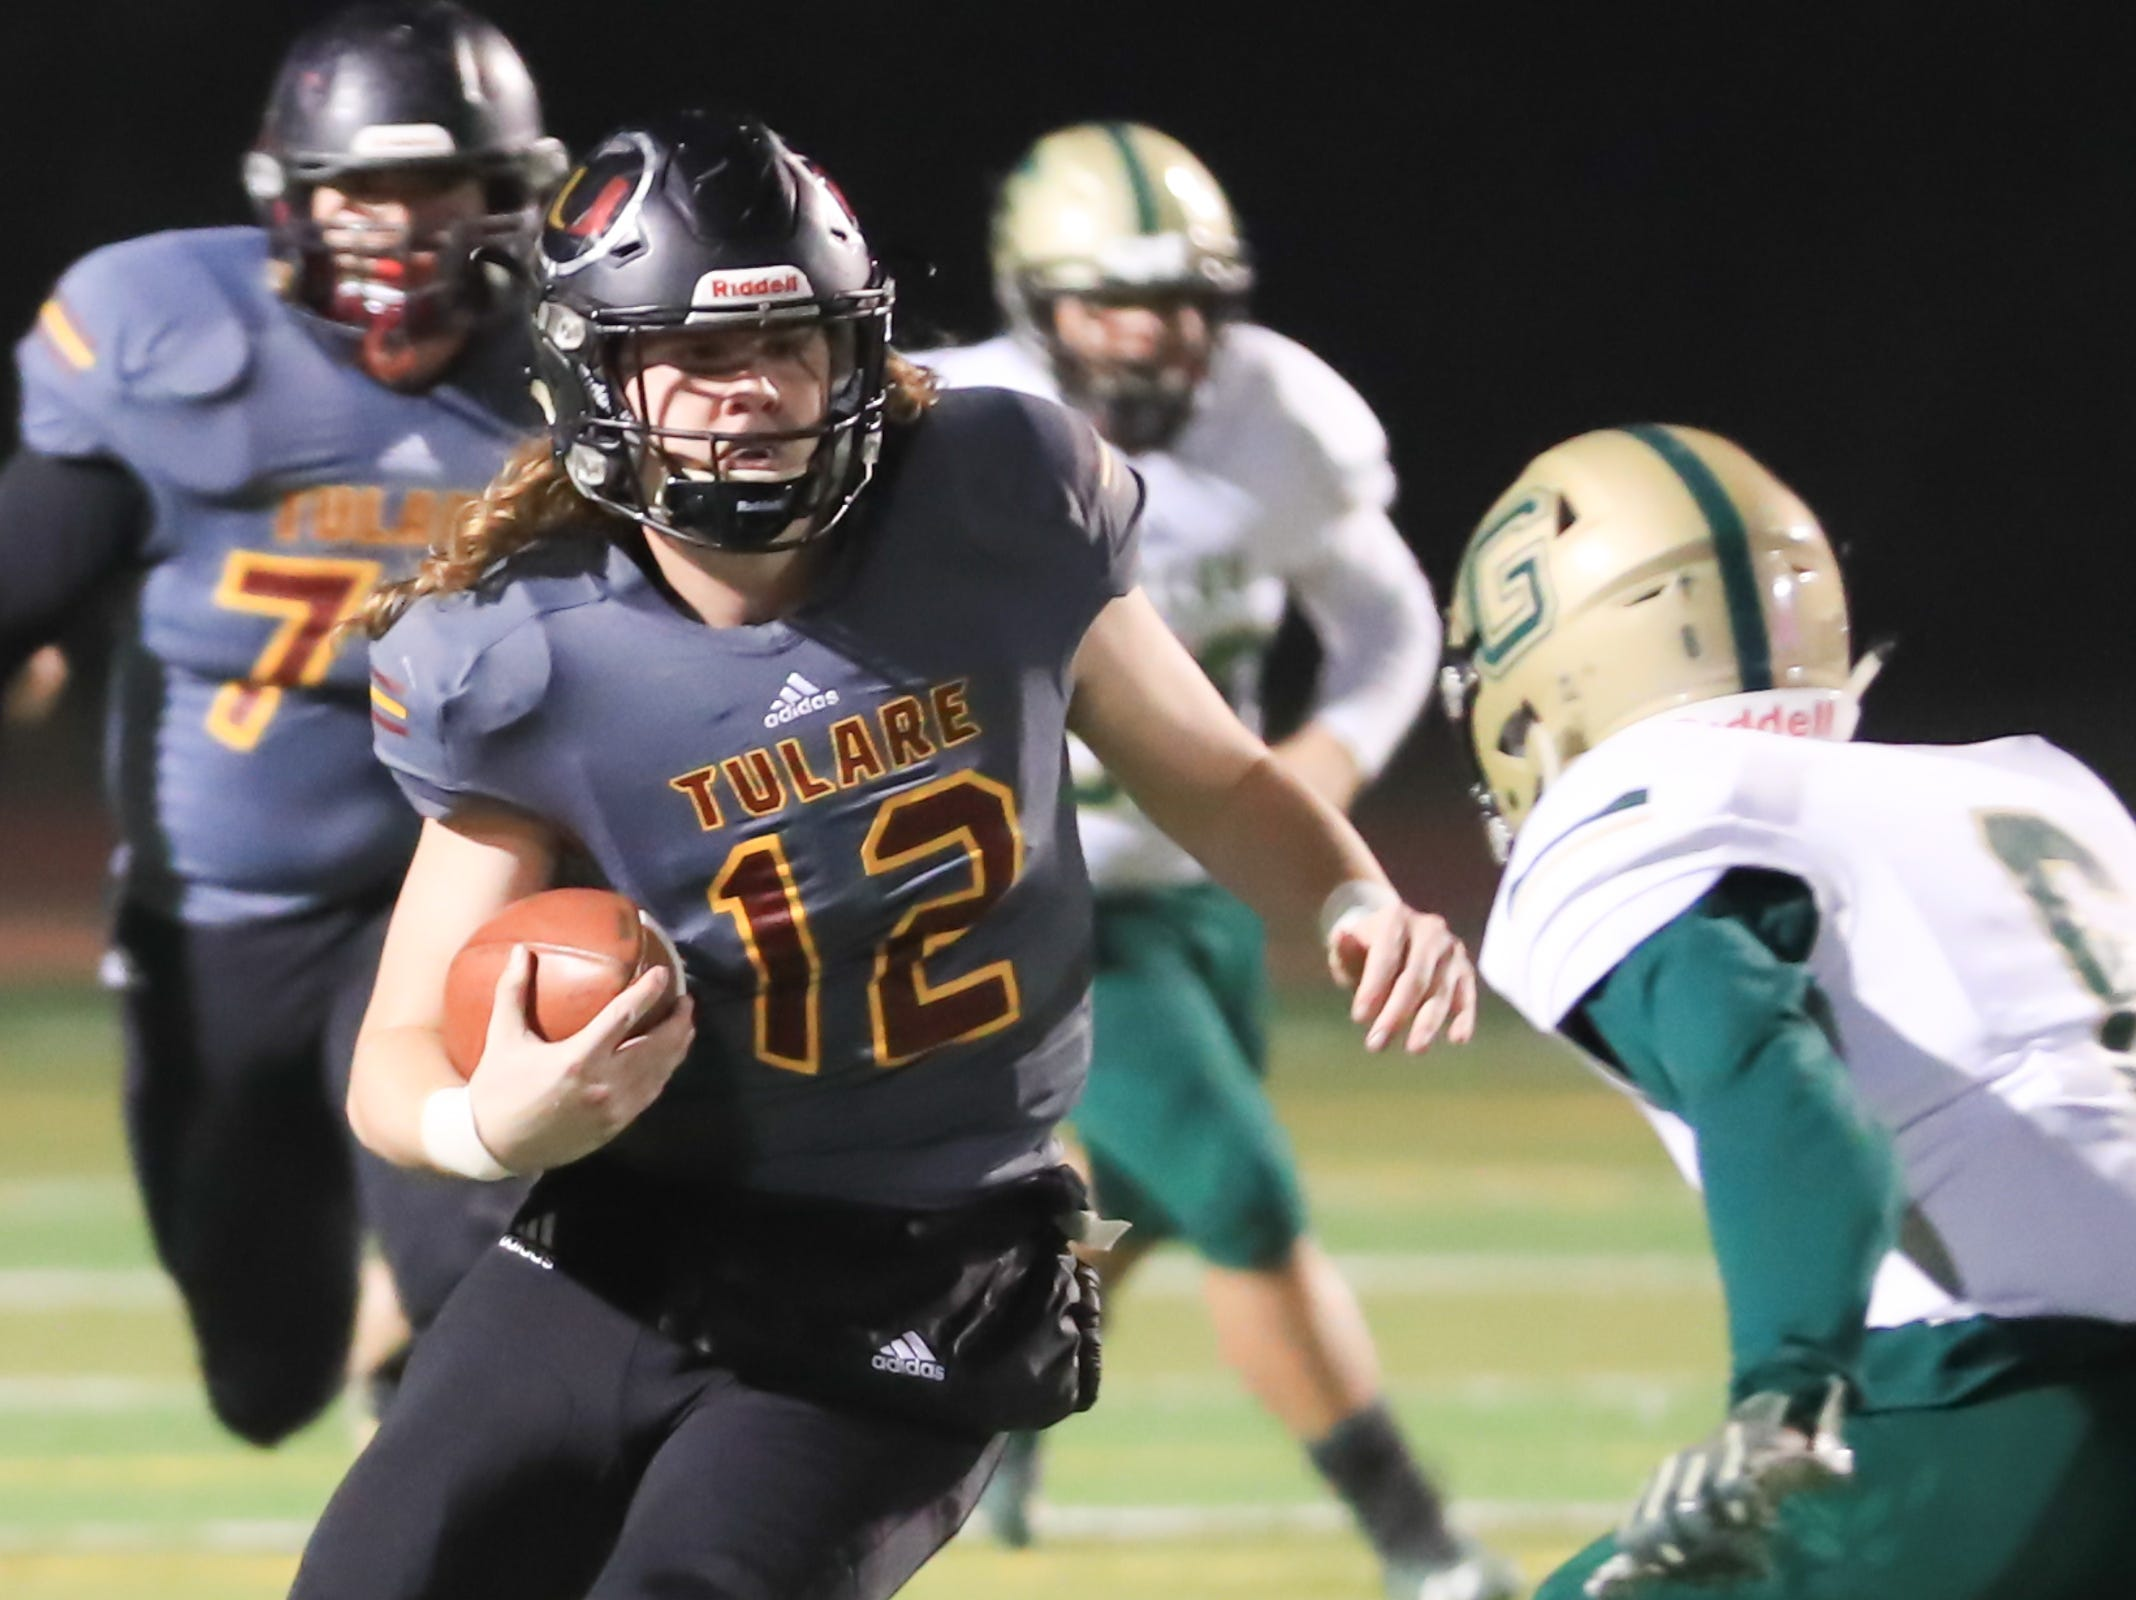 This semifinal playoff game will feature an all-Tulare County affair.